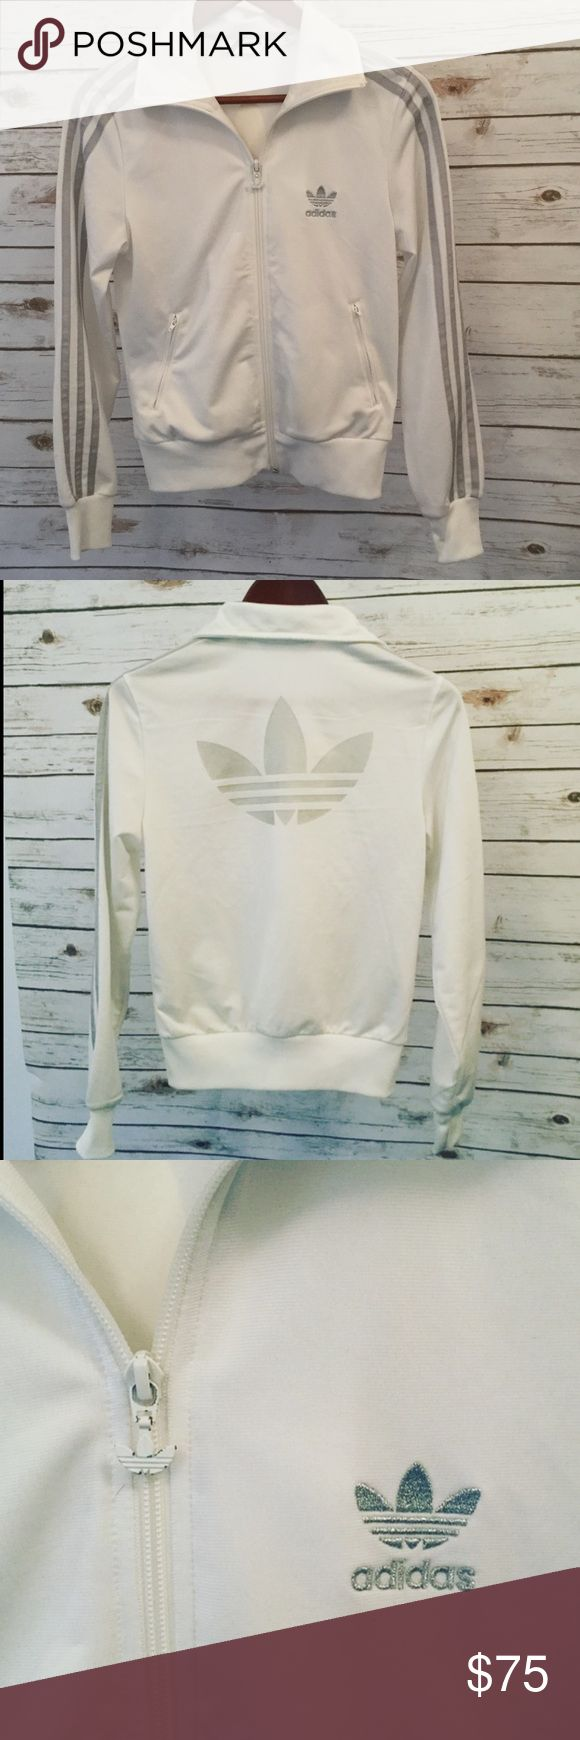 Adidas Original White/Silver Zip up NEW!! Brand New! FINAL PRICESuper Cute white with silver stripes down sleeves and silver adidas original emblem on the back and front.  Will look SO Adorable with your favorite distressed jeans or workout pants! Brought it with me on vacation but was too warm for it so I didn't wear it, washed it when i unpacked it so theres no tags. Adidas Jackets & Coats